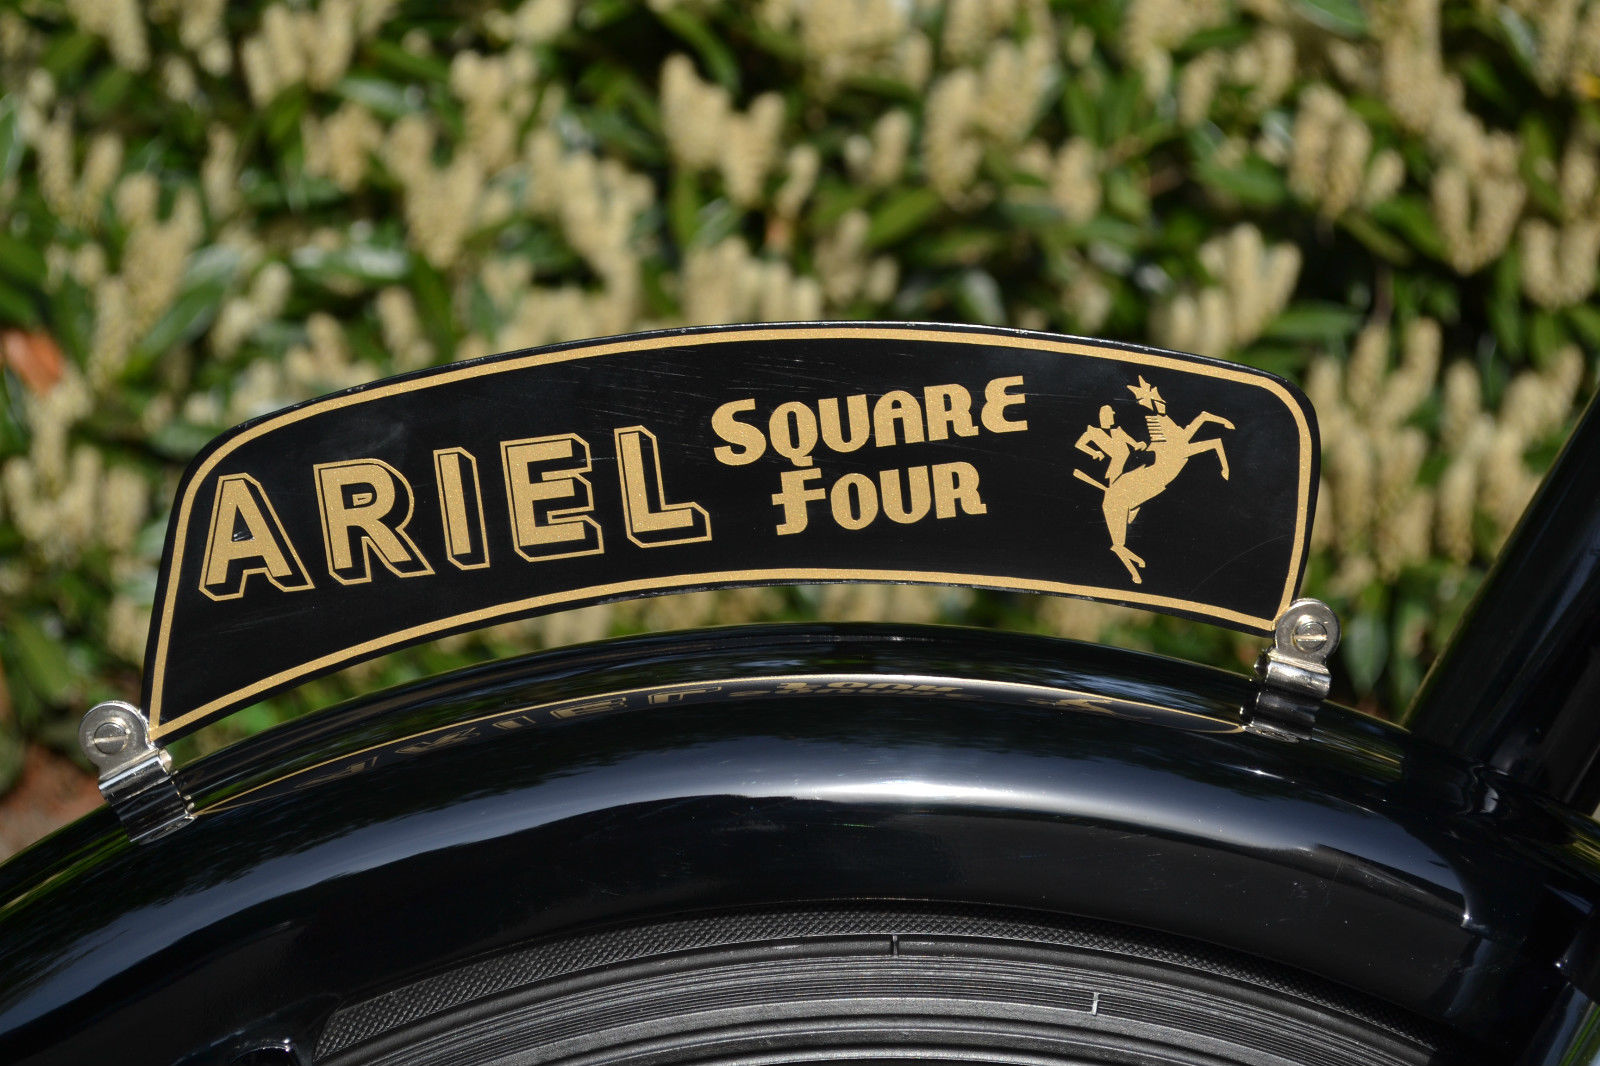 Ariel Square Four - 1952 - Square Four Number Plate.